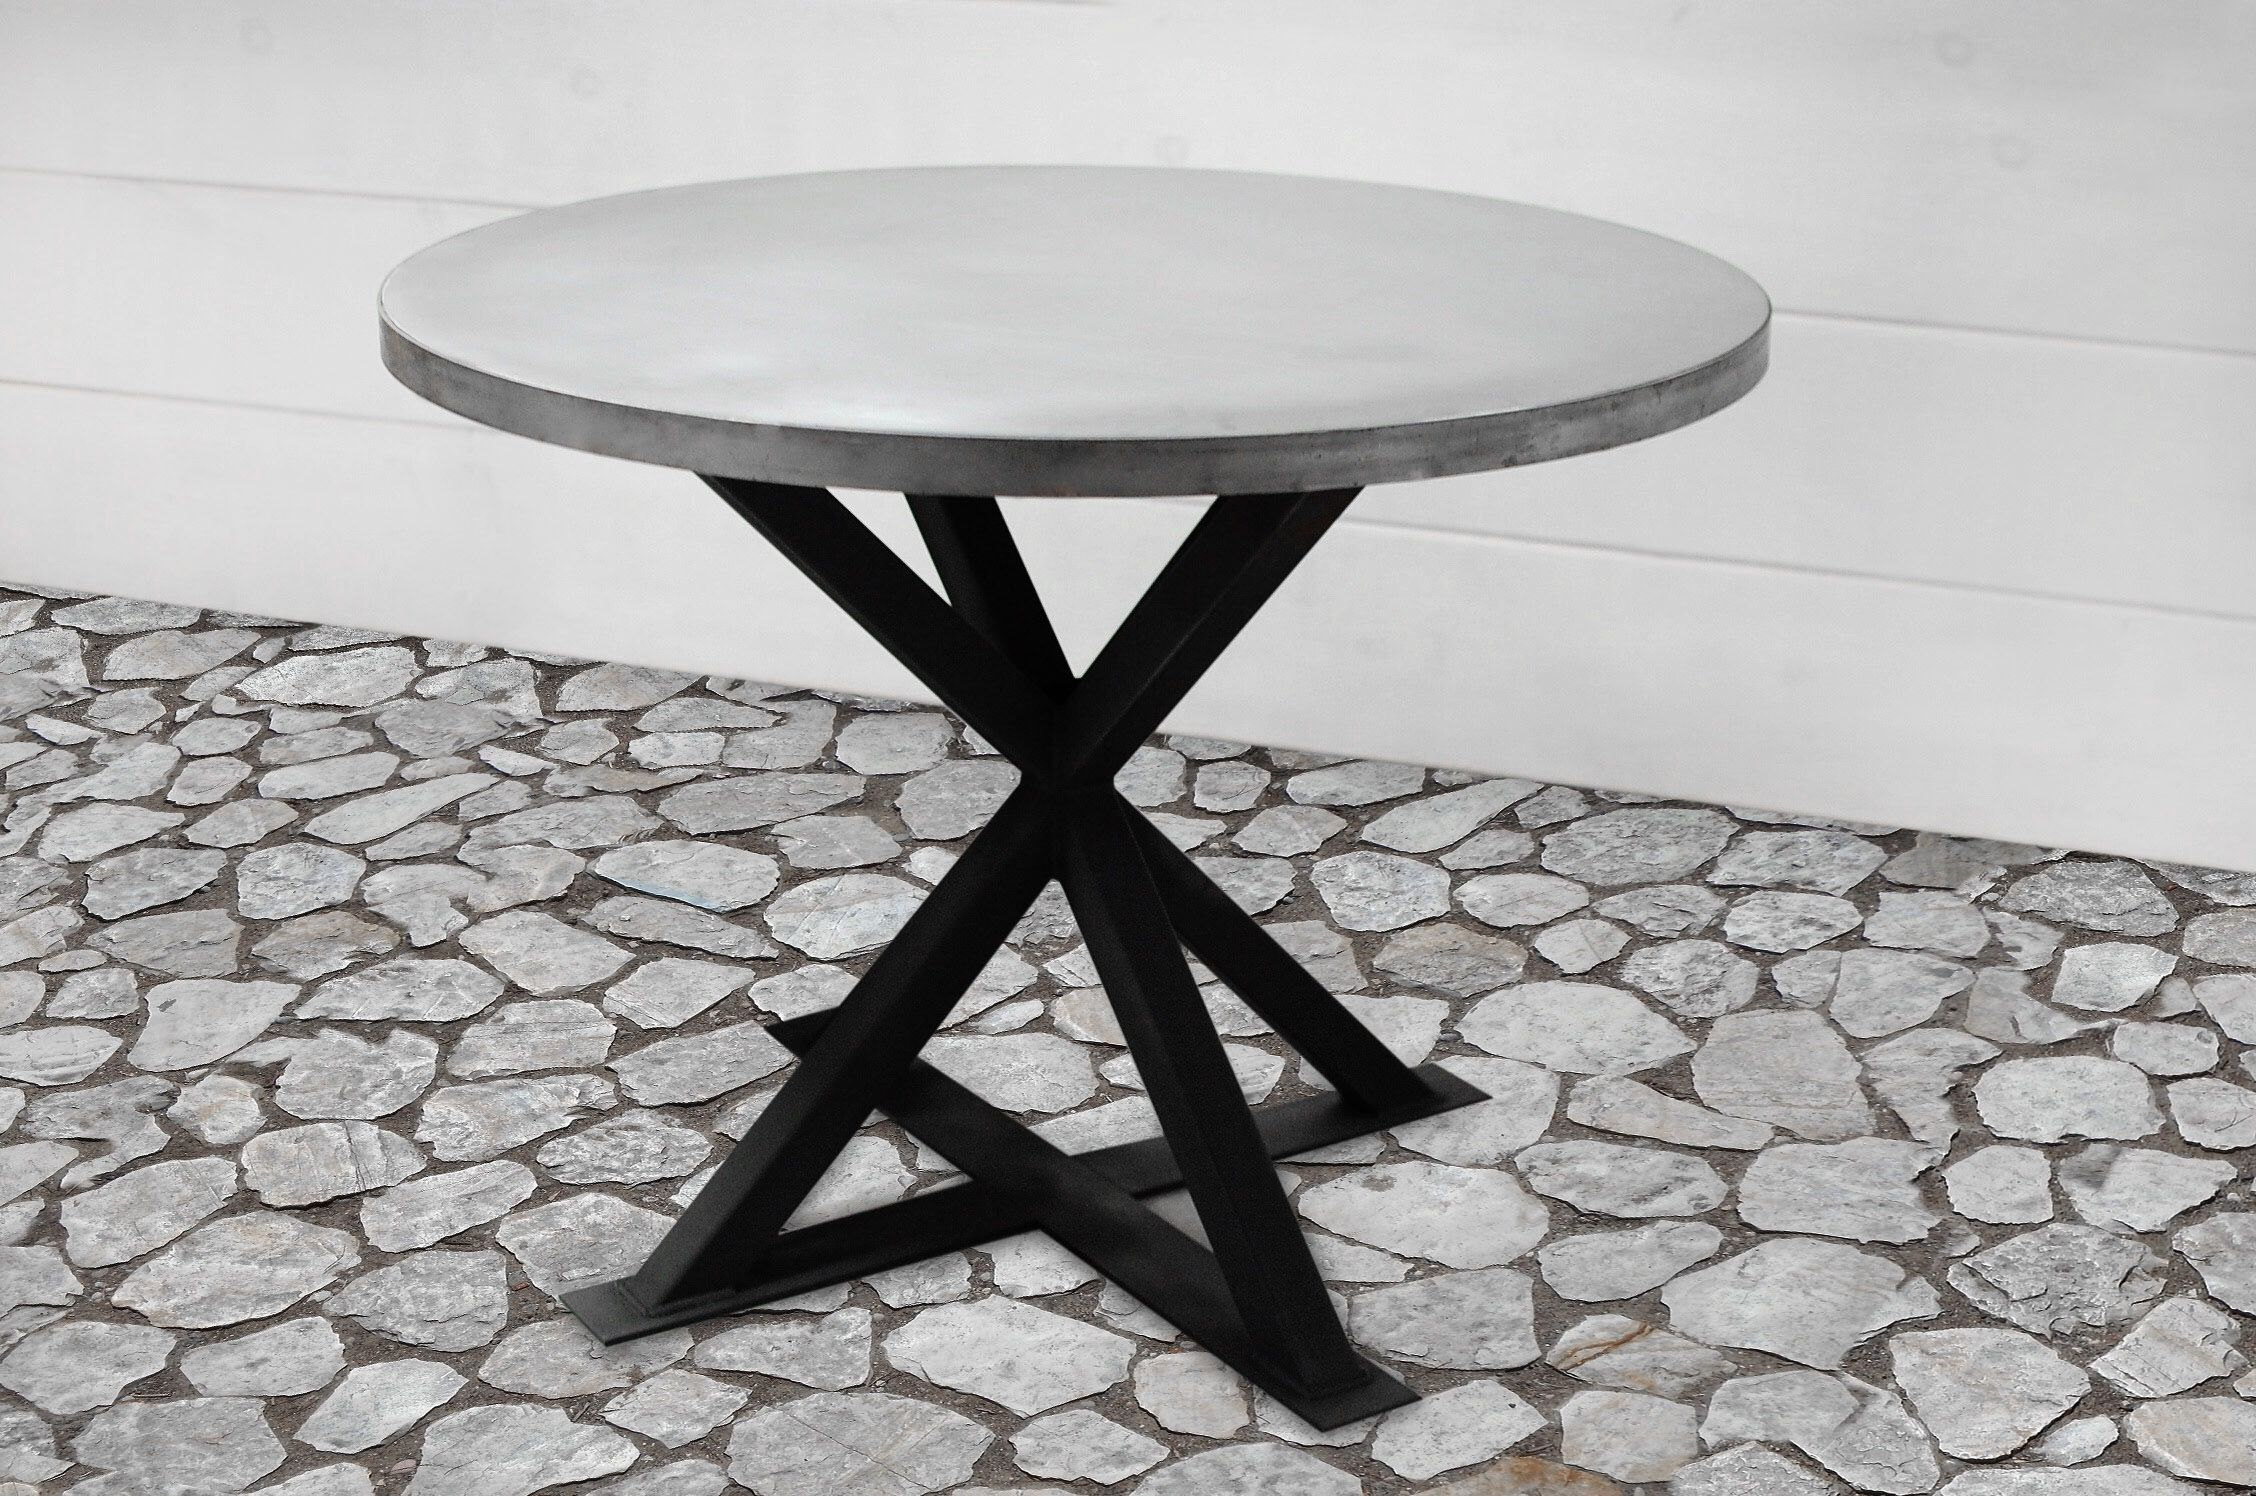 handmade kensington round zinc dining table southern sunshine accent custom made high end tables small stand marine style lighting fire pit and chairs west elm armoire multi